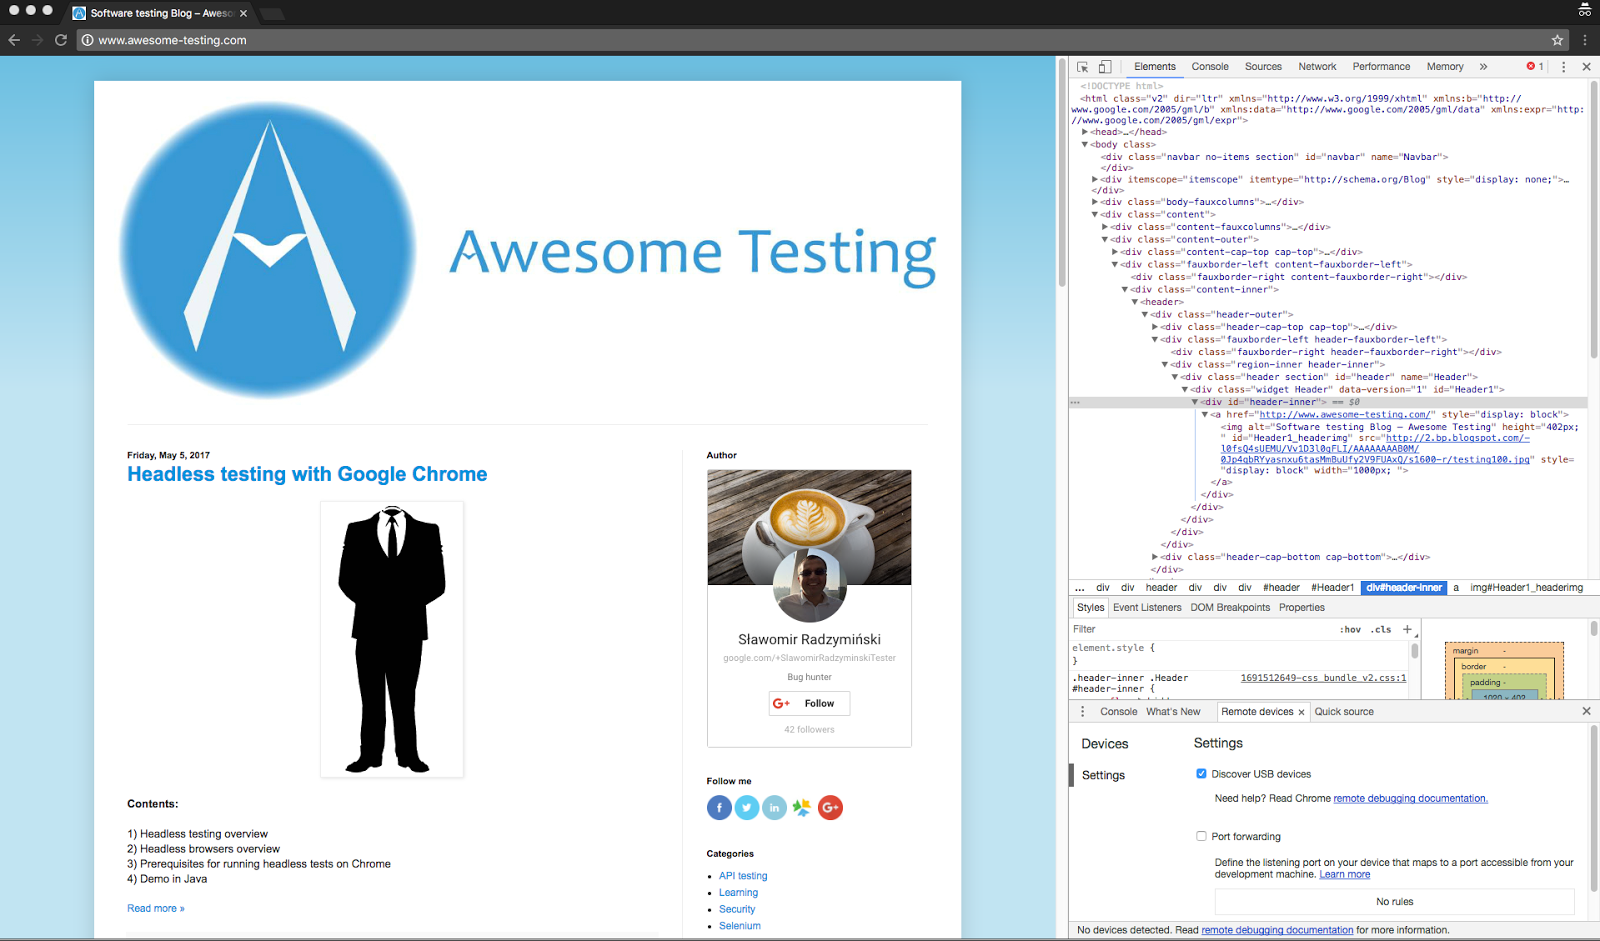 Software testing Blog – Awesome Testing: How to find & test